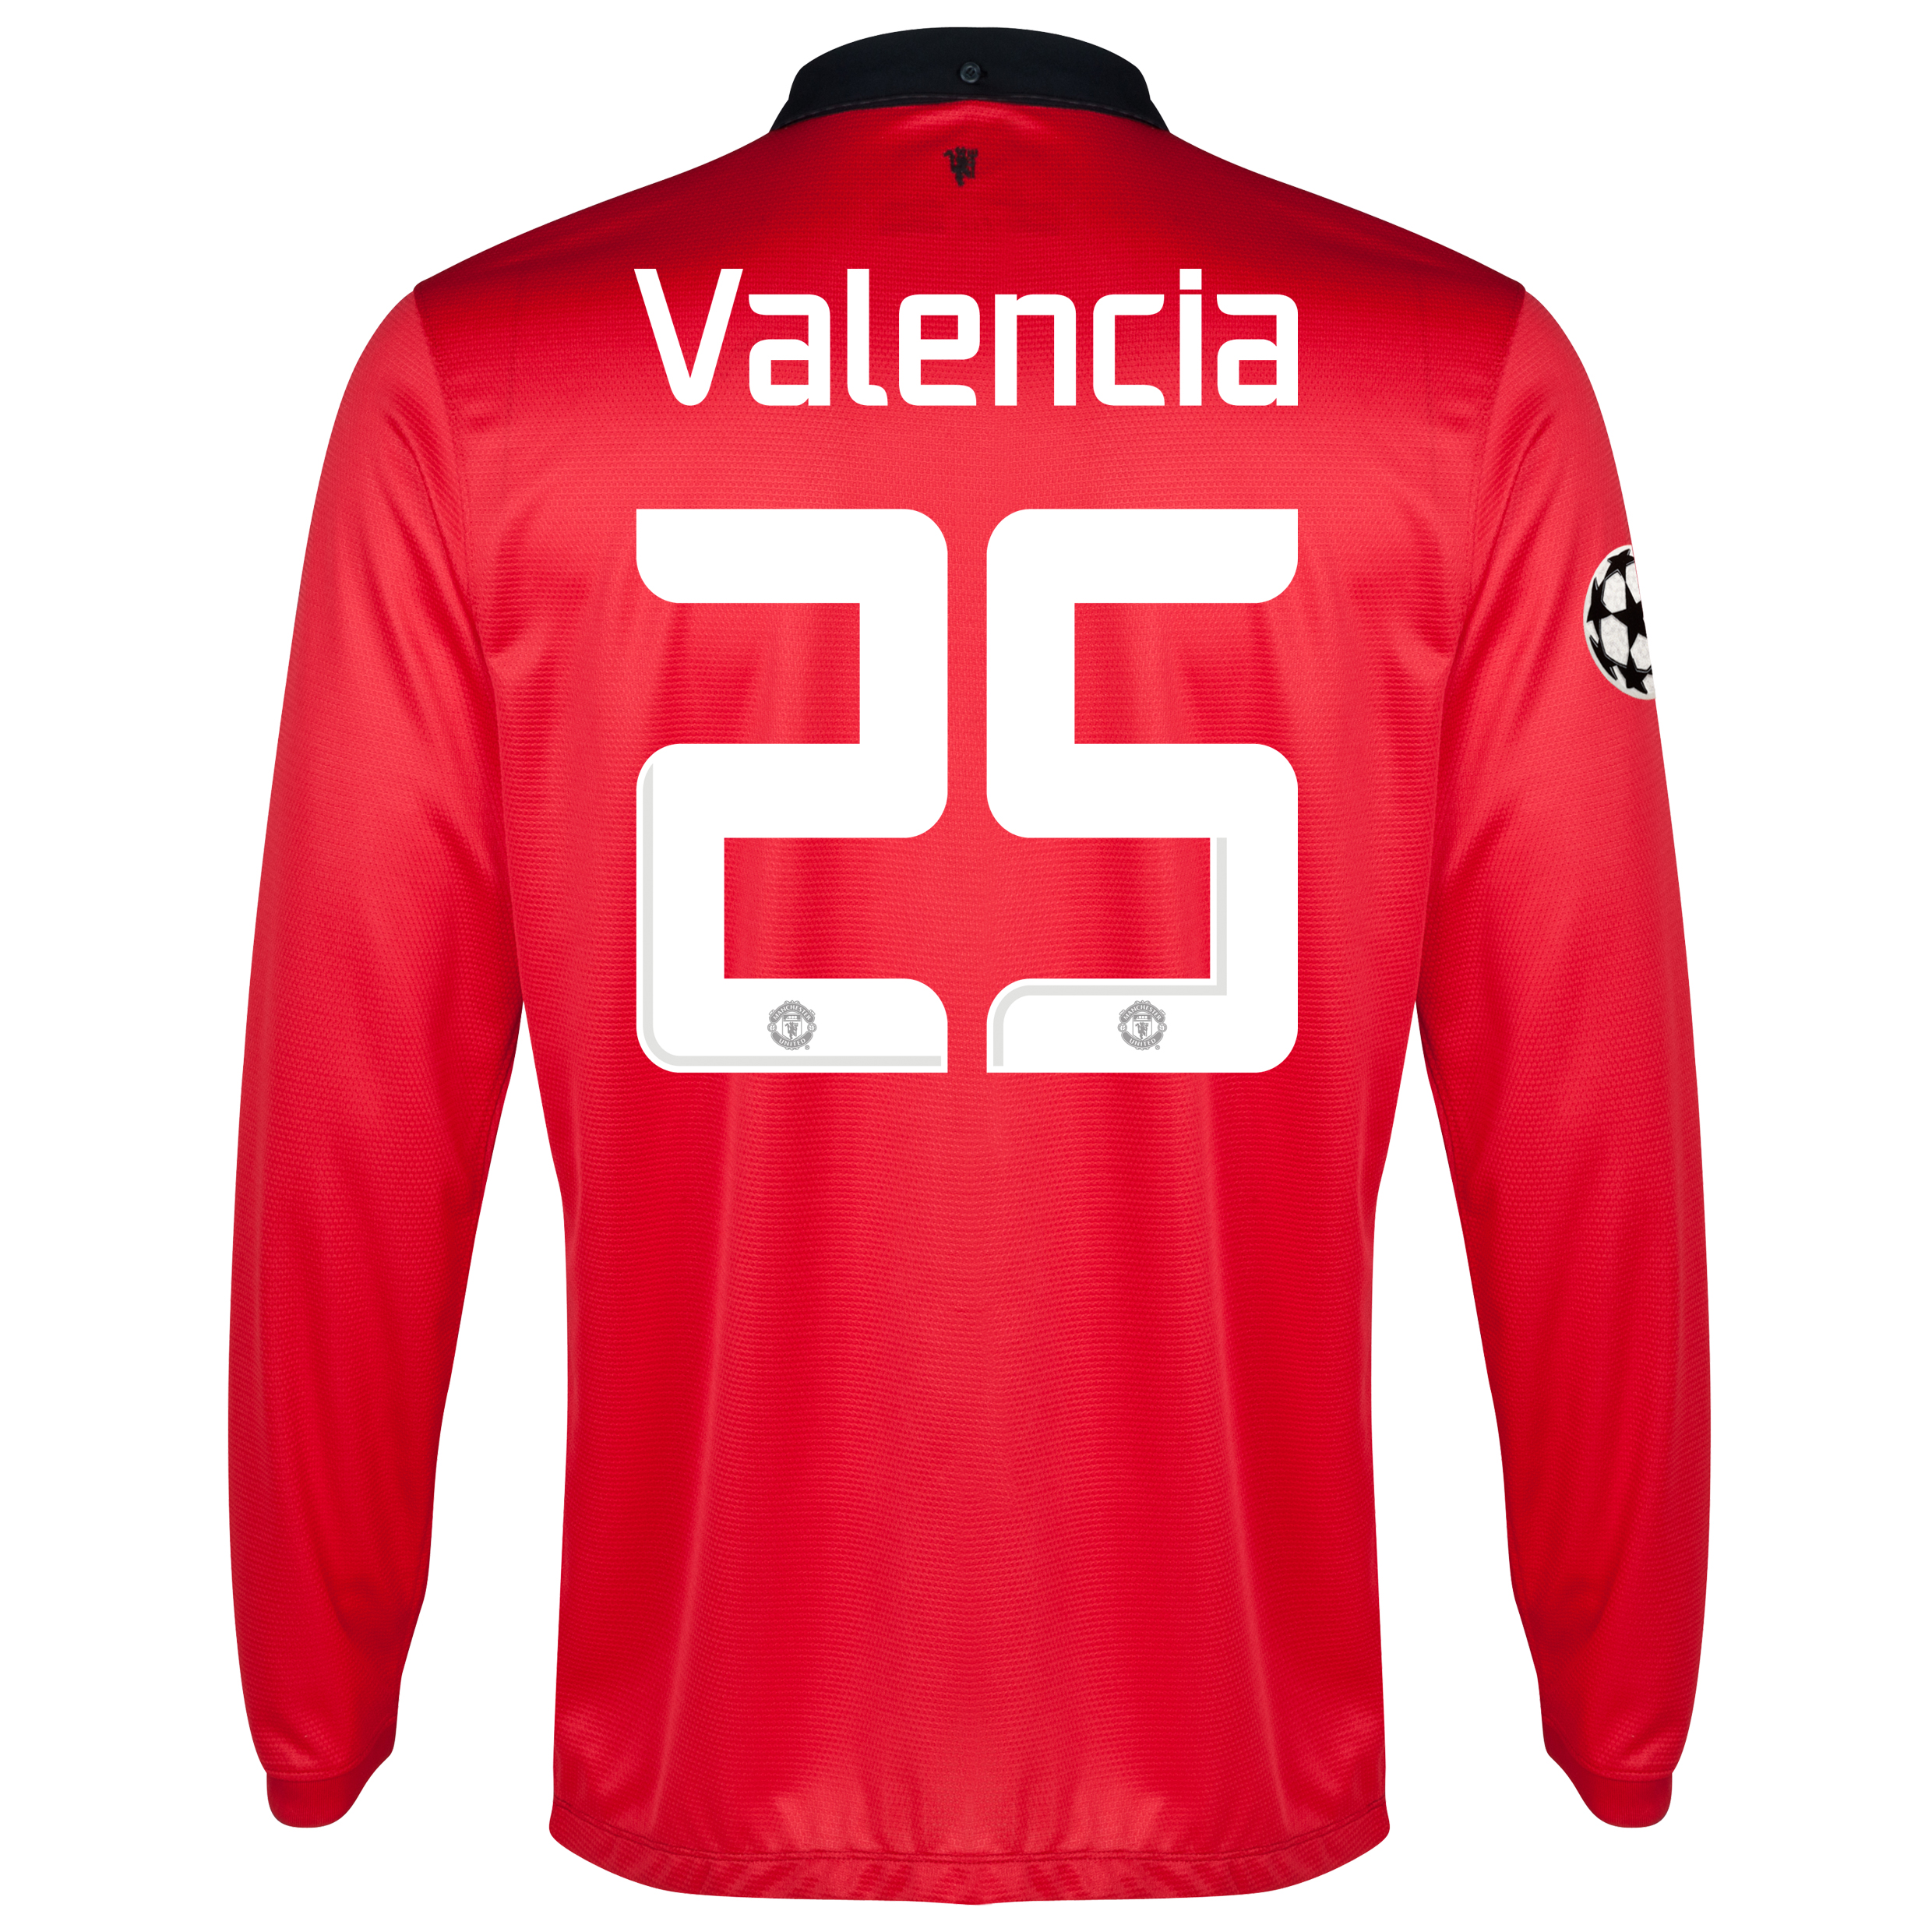 Manchester United UEFA Champions League Home Shirt 2013/14 - Long Sleeved - Kids with Valencia 25 printing